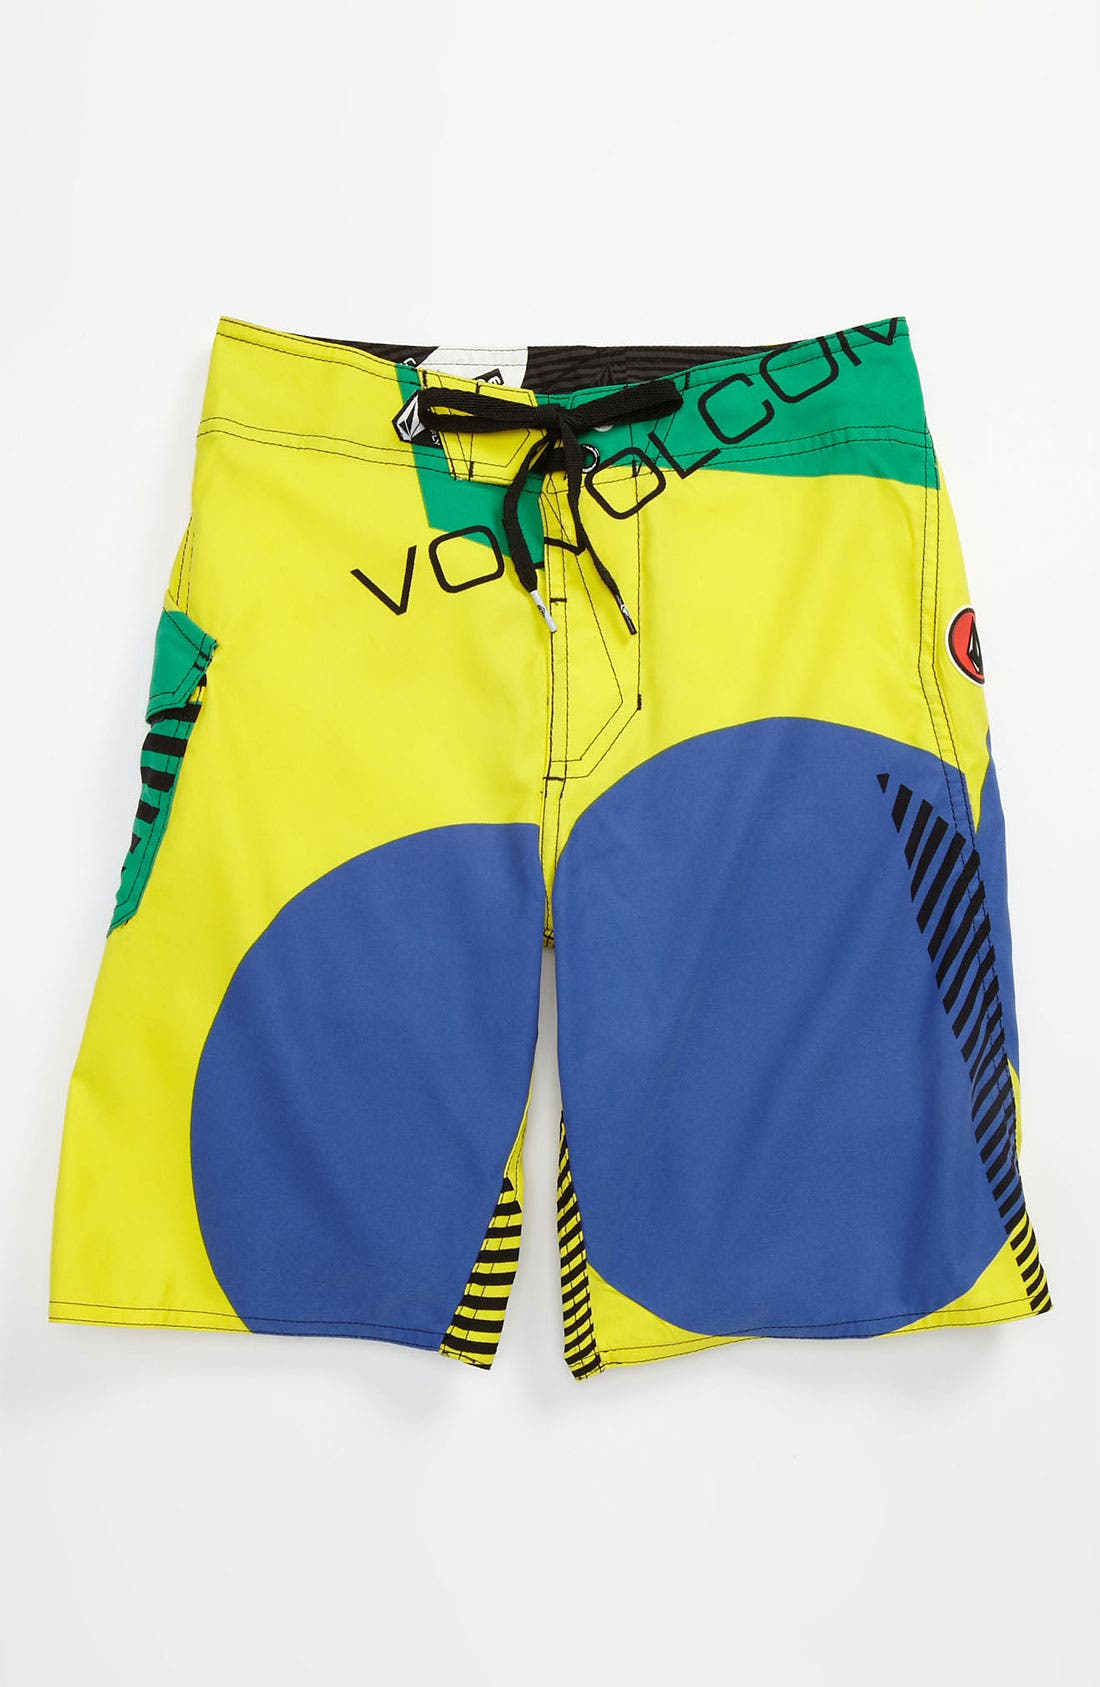 Alternate Image 1 Selected - Volcom 'Maguro' Board Shorts (Little Boys)